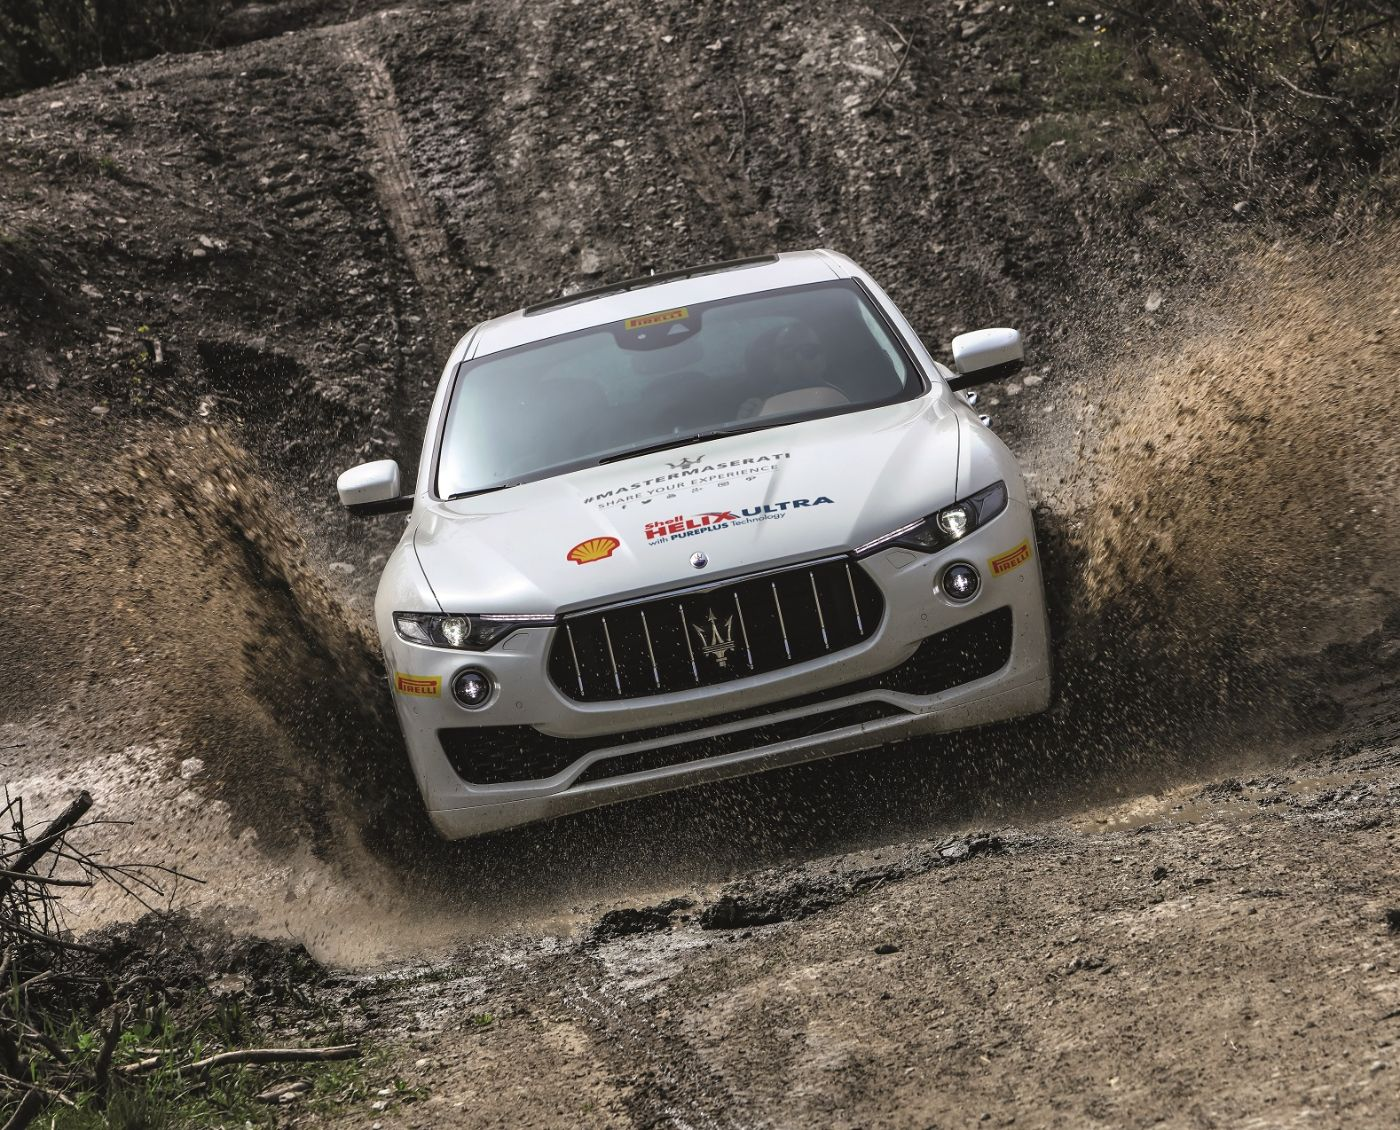 Off-road driving Maserati Levante - Shell Helix Ultra Maserati  co-branded motor oil